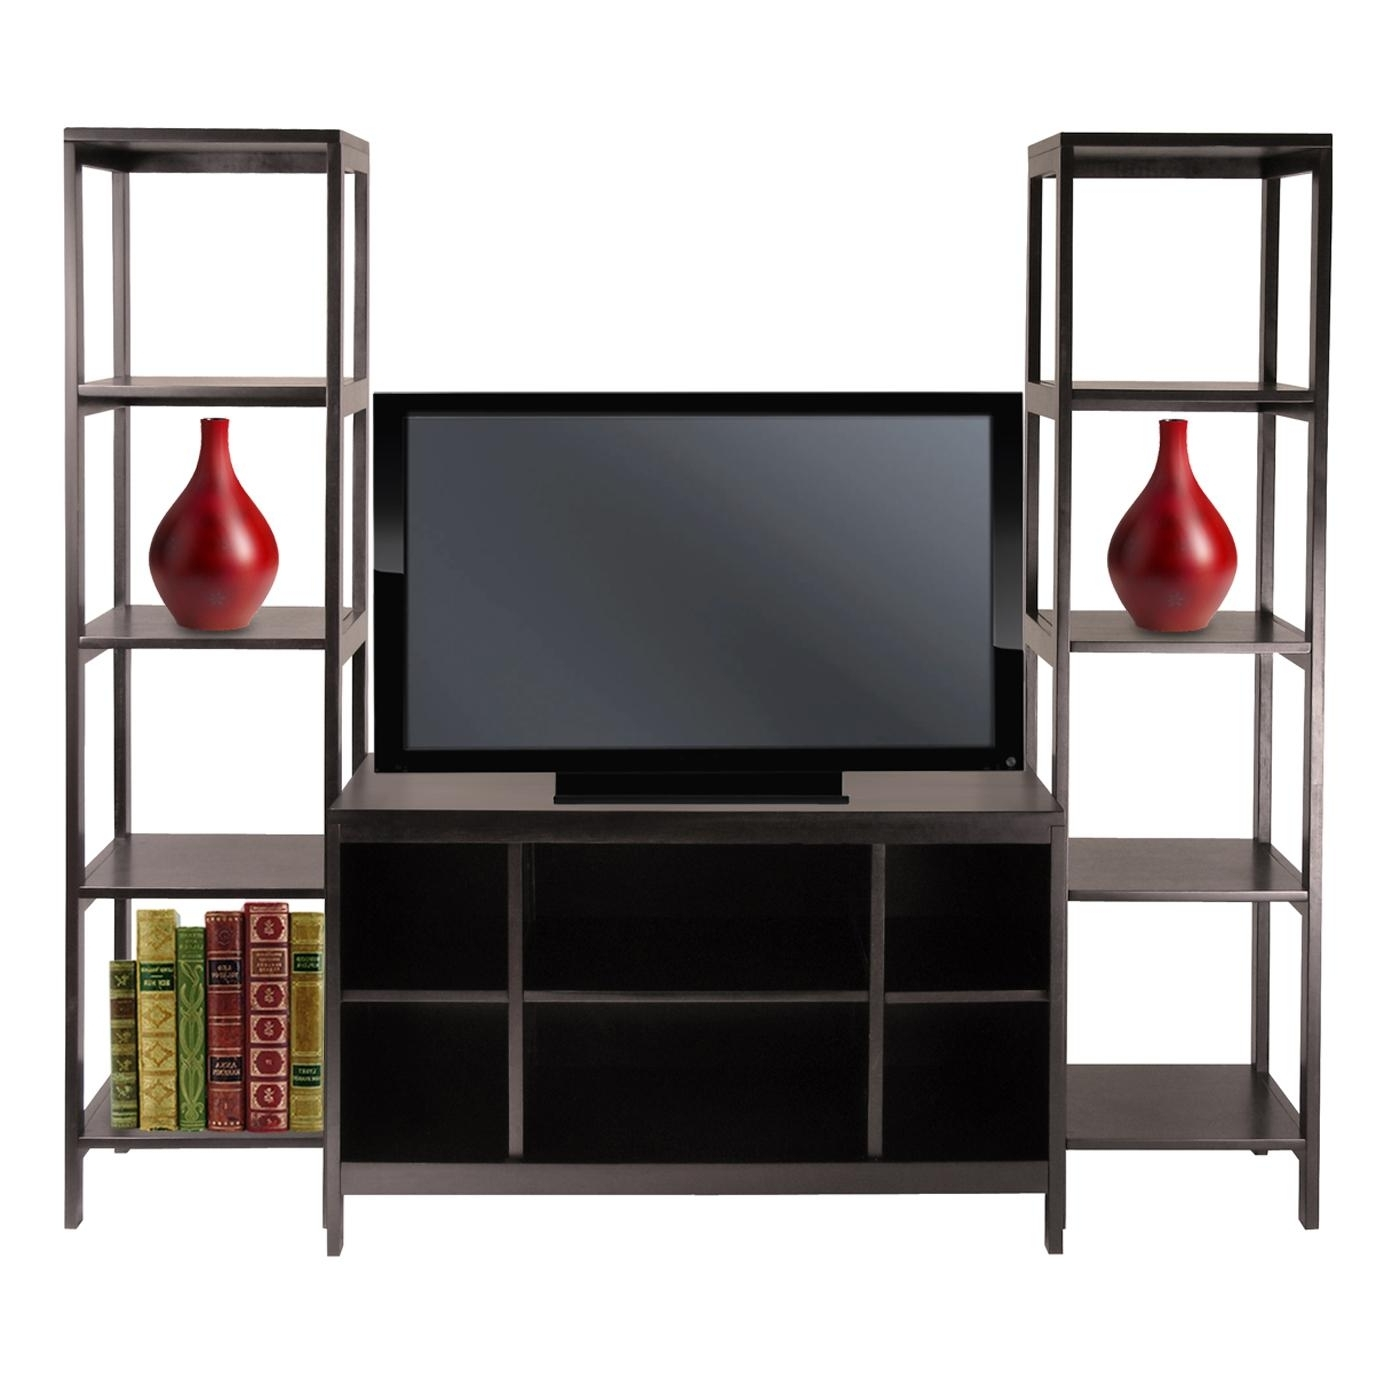 Tv Stand With Bookcases Home Decor Interior Exterior Lovely Under With Best And Newest Bookcases Tv Stand (View 12 of 15)